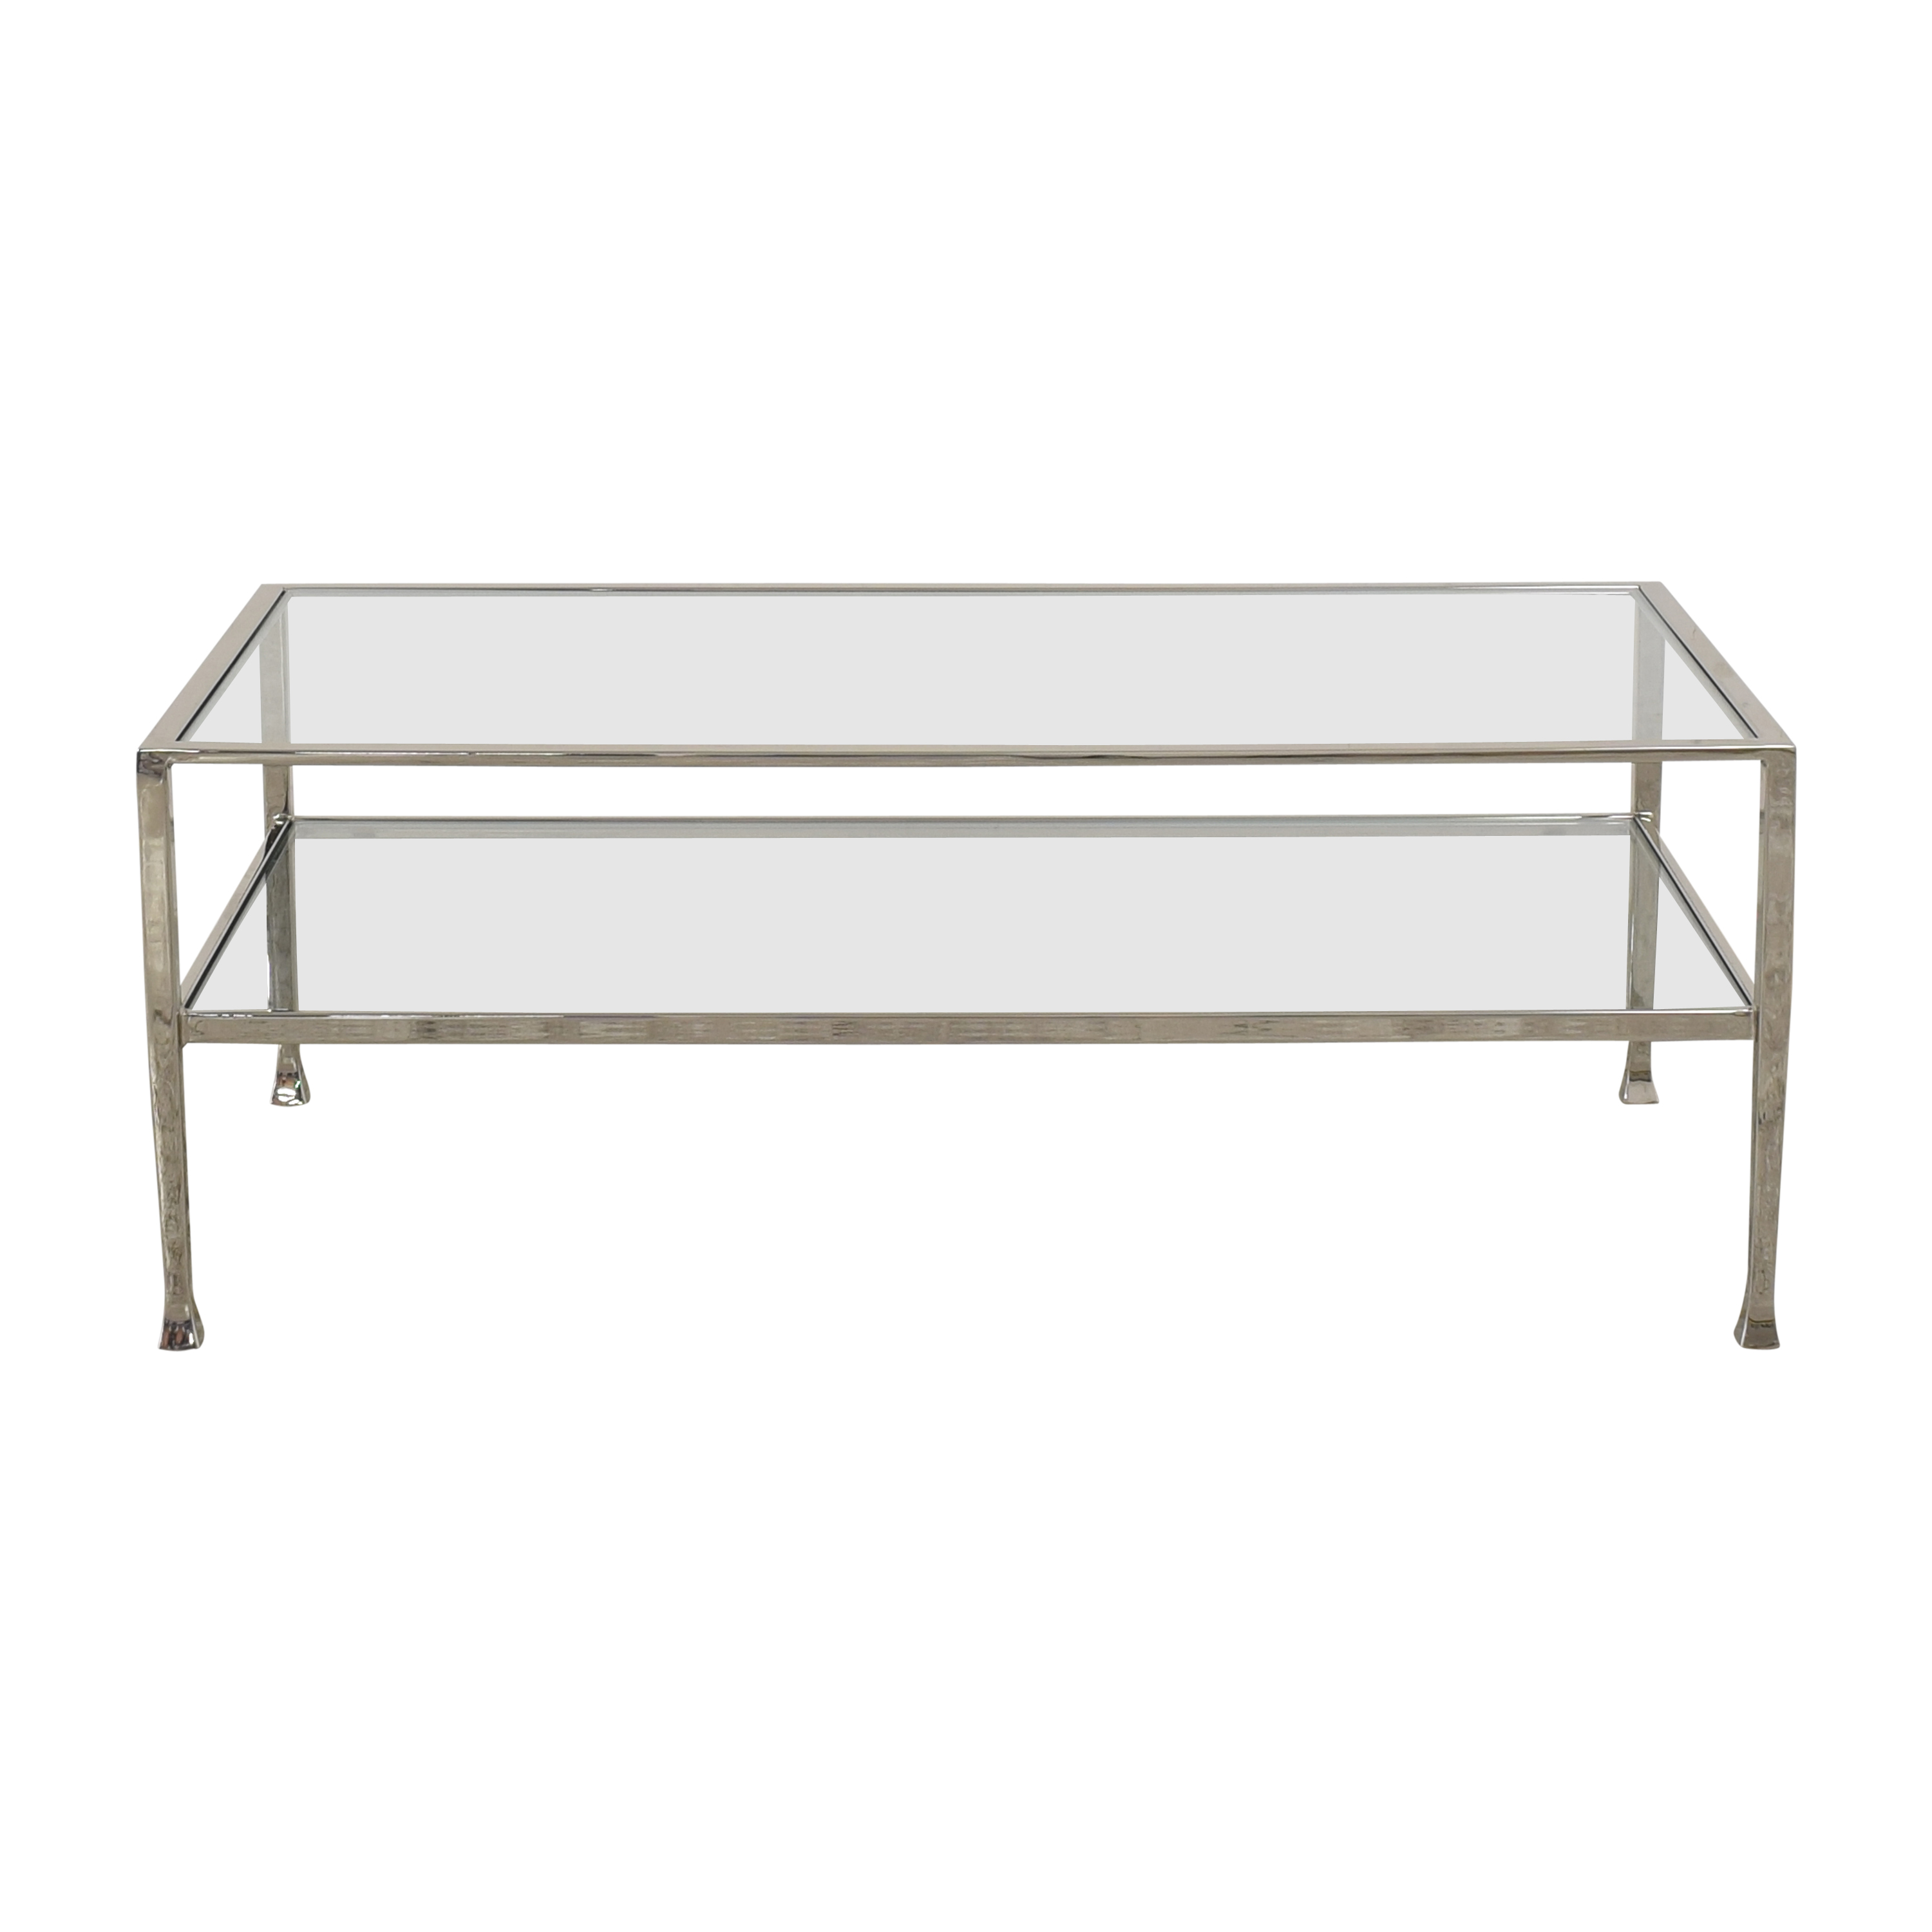 Pottery Barn Pottery Barn Tanner Rectangular Coffee Table for sale